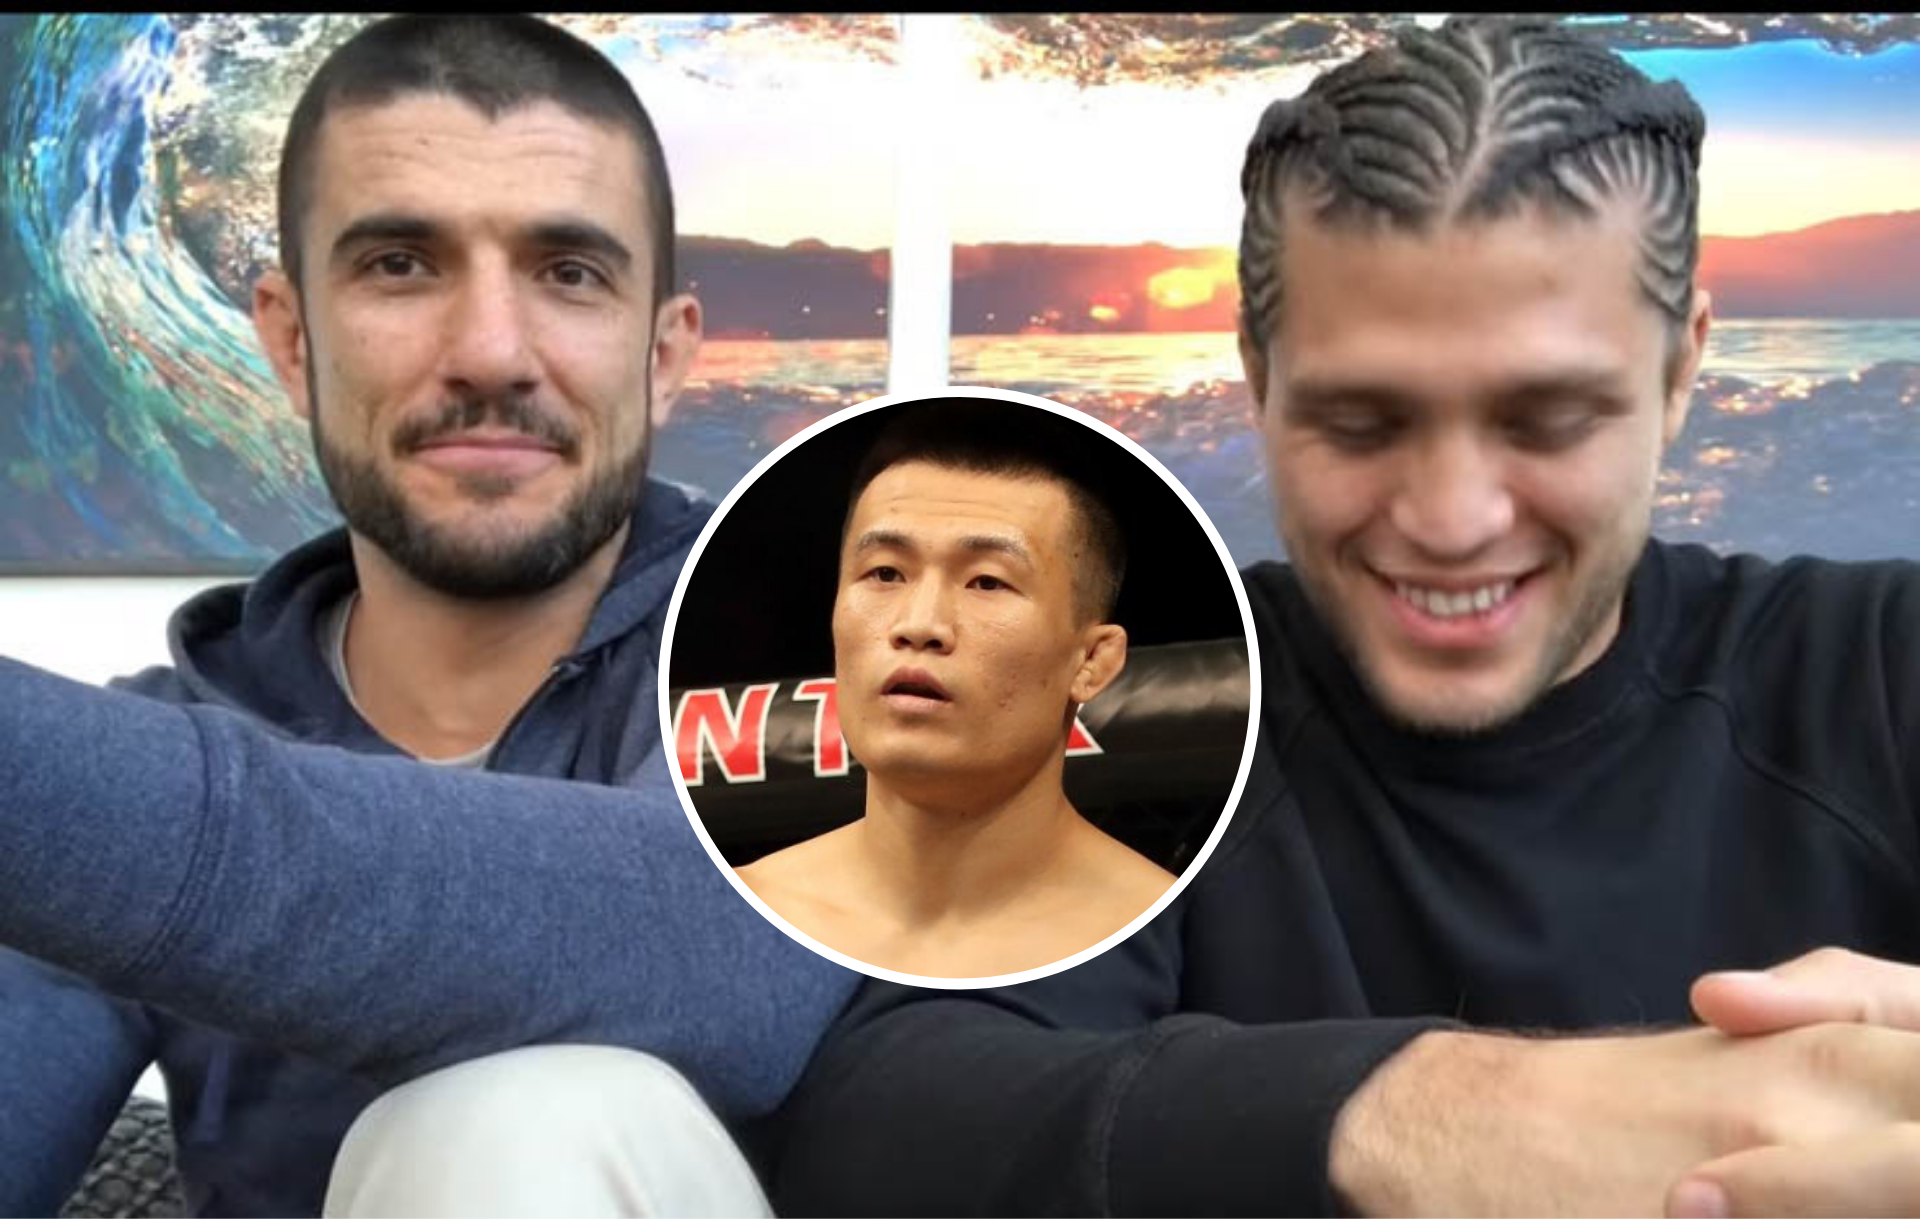 UFC News: Classy Rener Gracie apologises to Korean Zombie for supporting Brian Ortega's actions - Rener